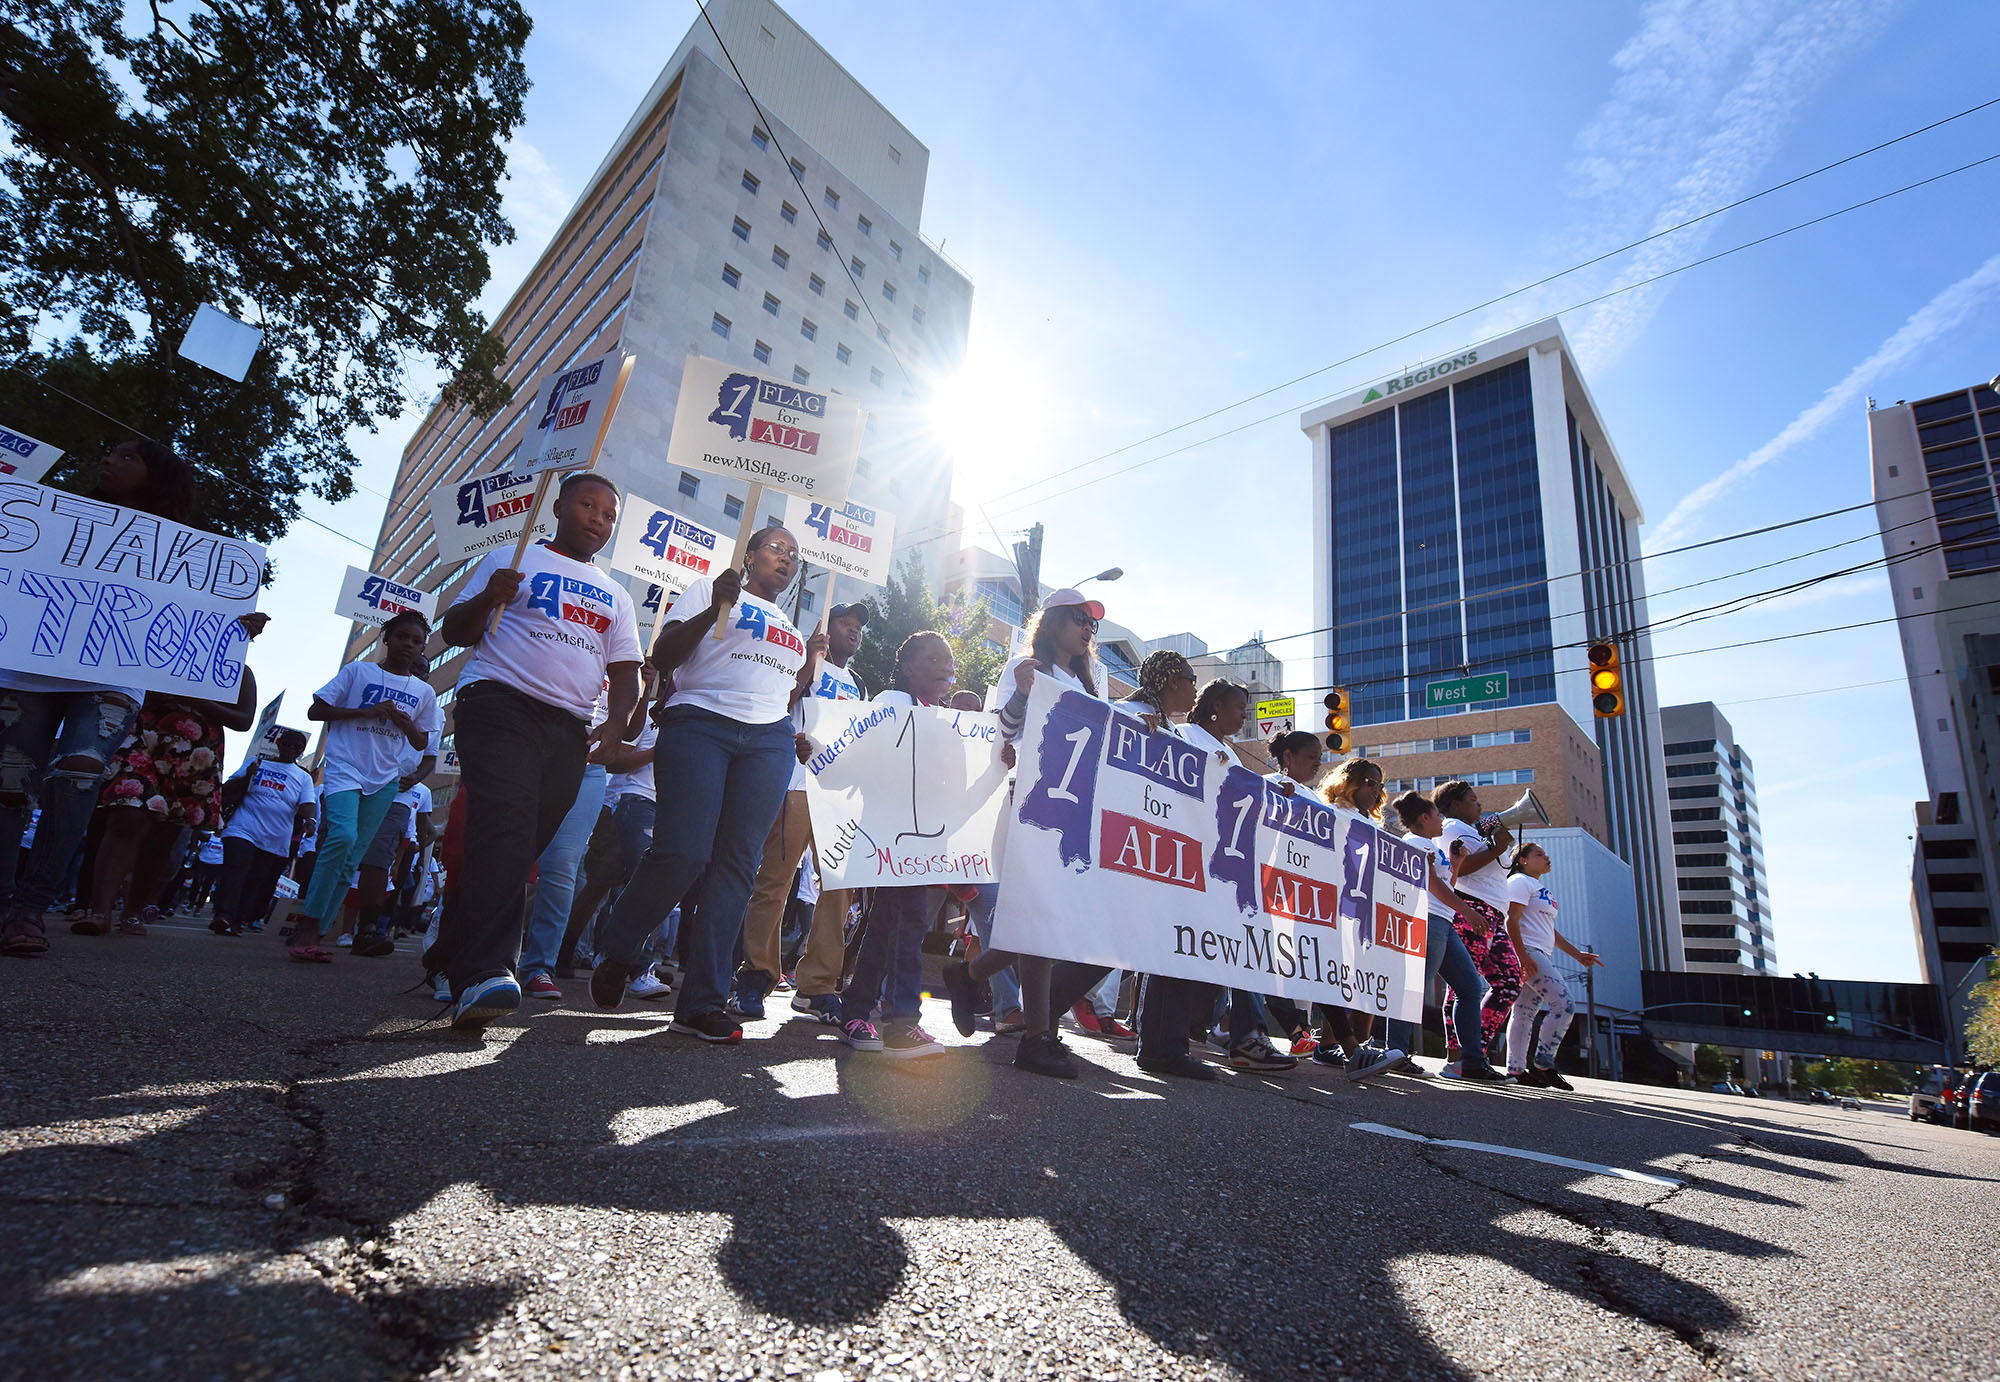 People march in Jackson, Miss., Sunday, Oct. 11, 2015, en route to a change-the-flag rally on the steps of the state Capitol. Civil-rights leader Myrlie Evers-Williams, Mississippi-born rapper David Banner and a prominent South Carolina lawmaker are calling on Mississippi to remove the Confederate battle emblem from its state flag. (Joe Ellis/The Clarion-Ledger via AP) NO SALES; MANDATORY CREDIT